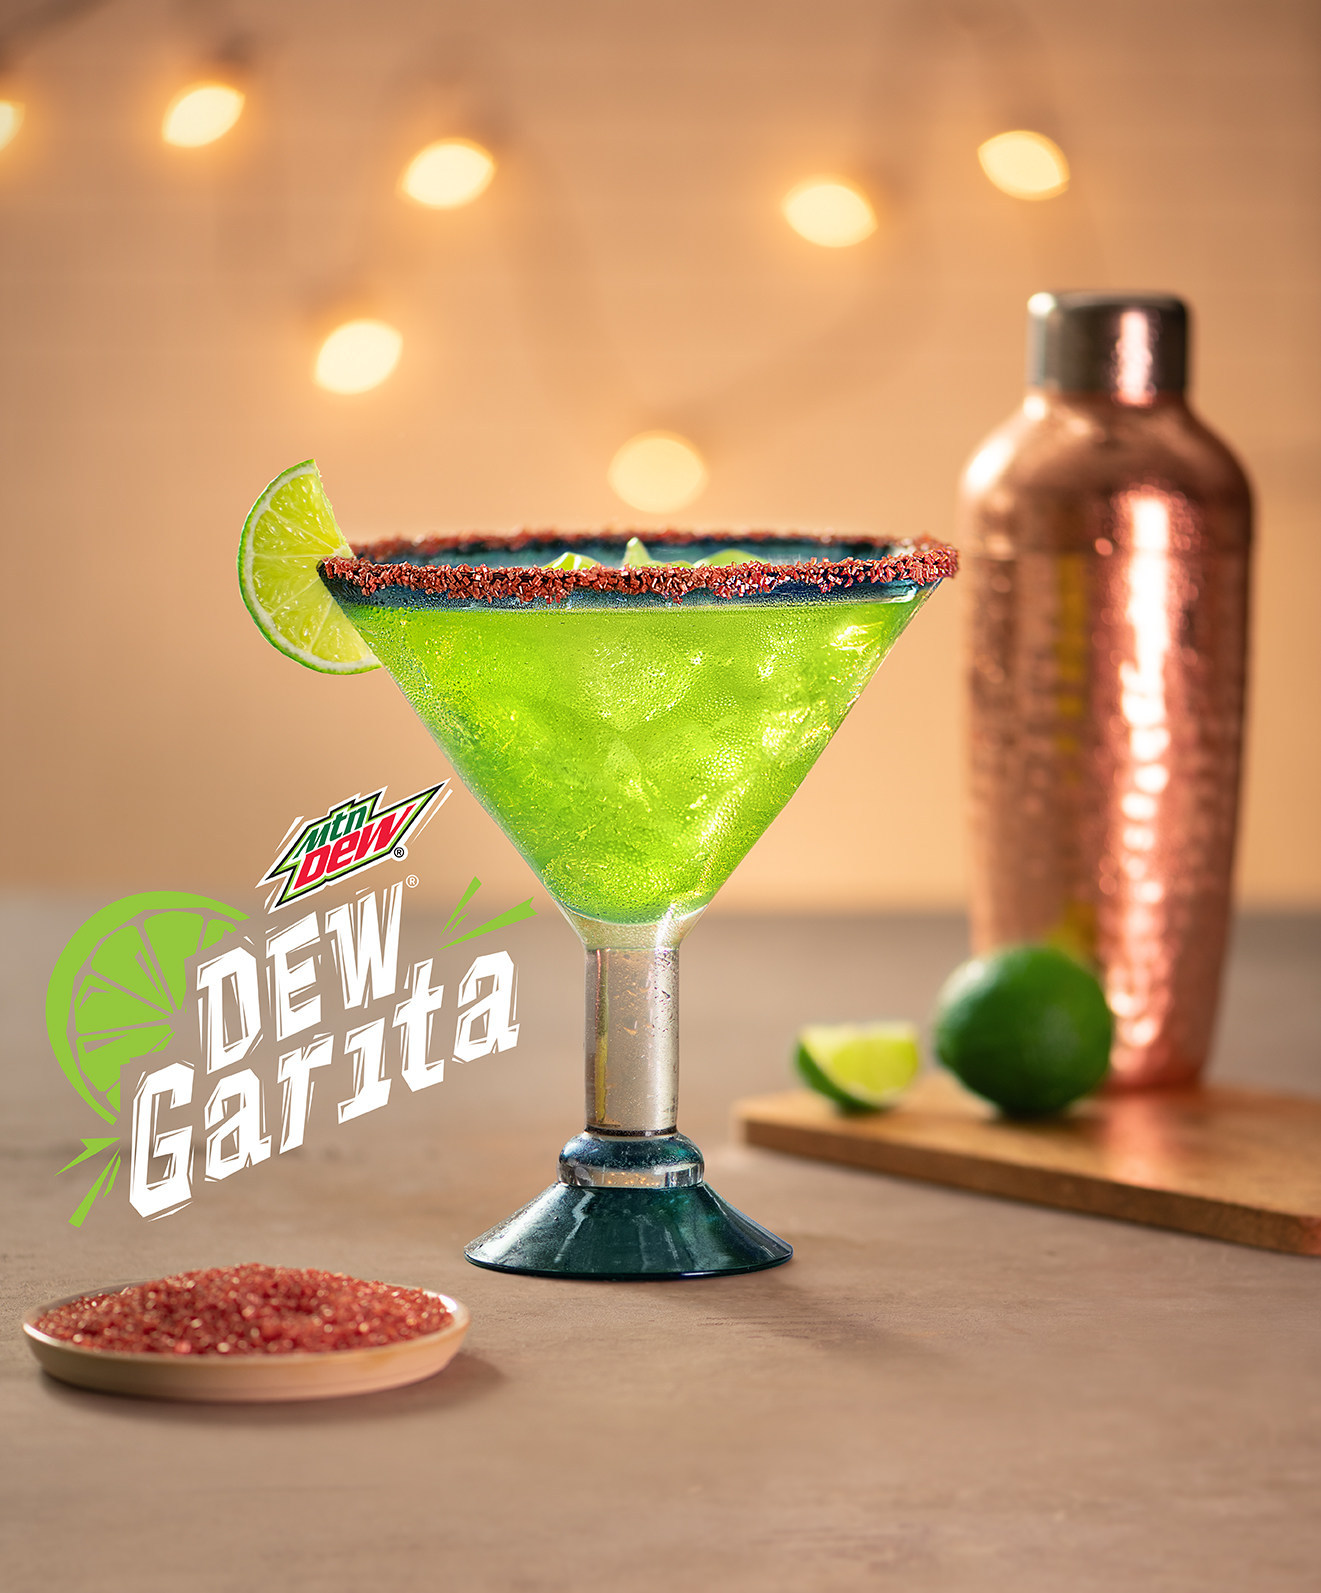 """The new """"Dew Garita"""" cocktail has the look of the soft drink and includes the citrus-flavored Mountain Dew soda, tequila and a """"few other special ingredients."""""""